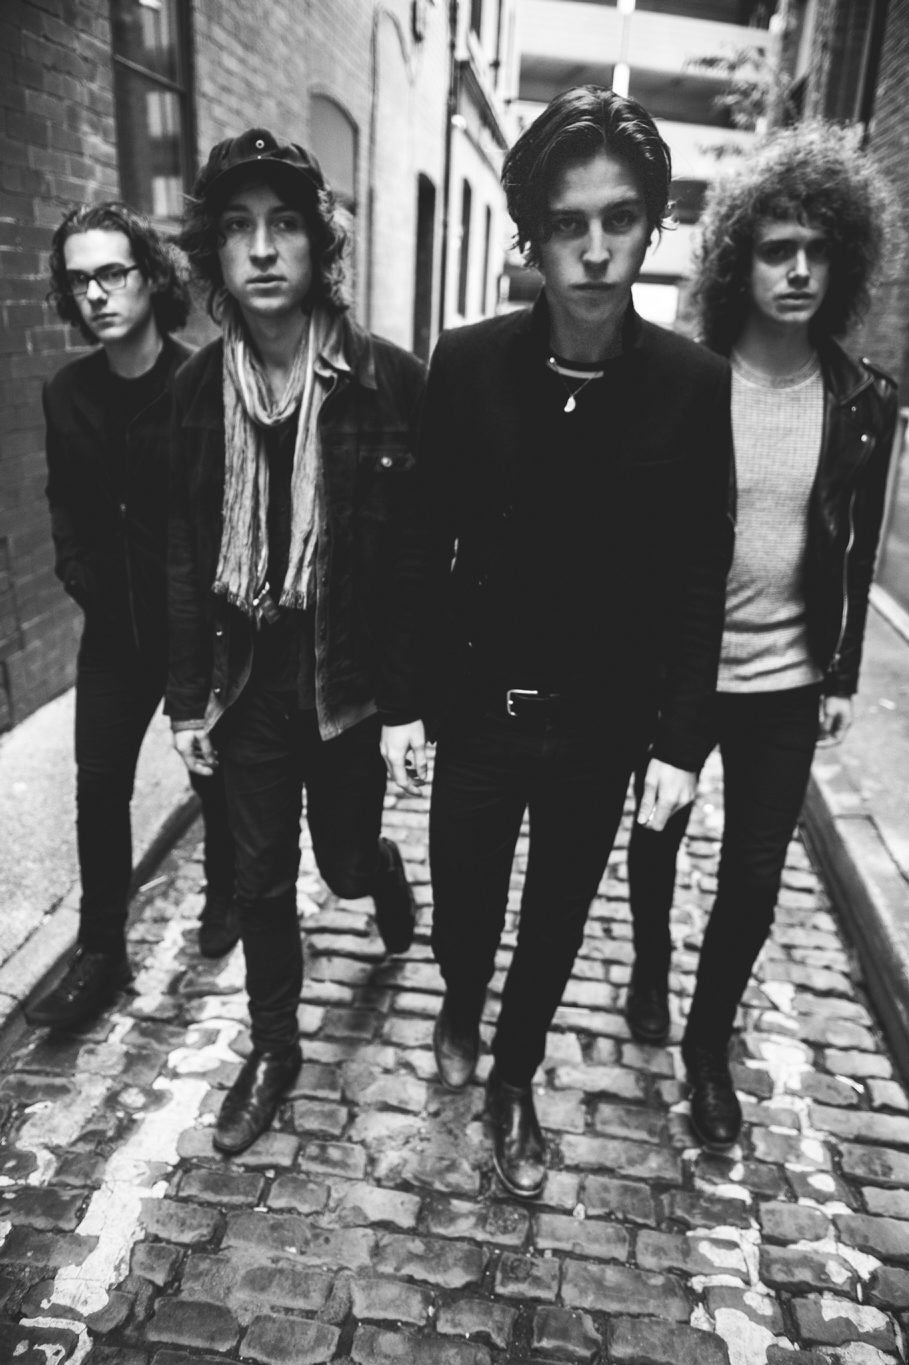 Catfish and the Bottlemen, who play the Town Ballroom on June 2, blend aspects of Brit-pop and indie rock.